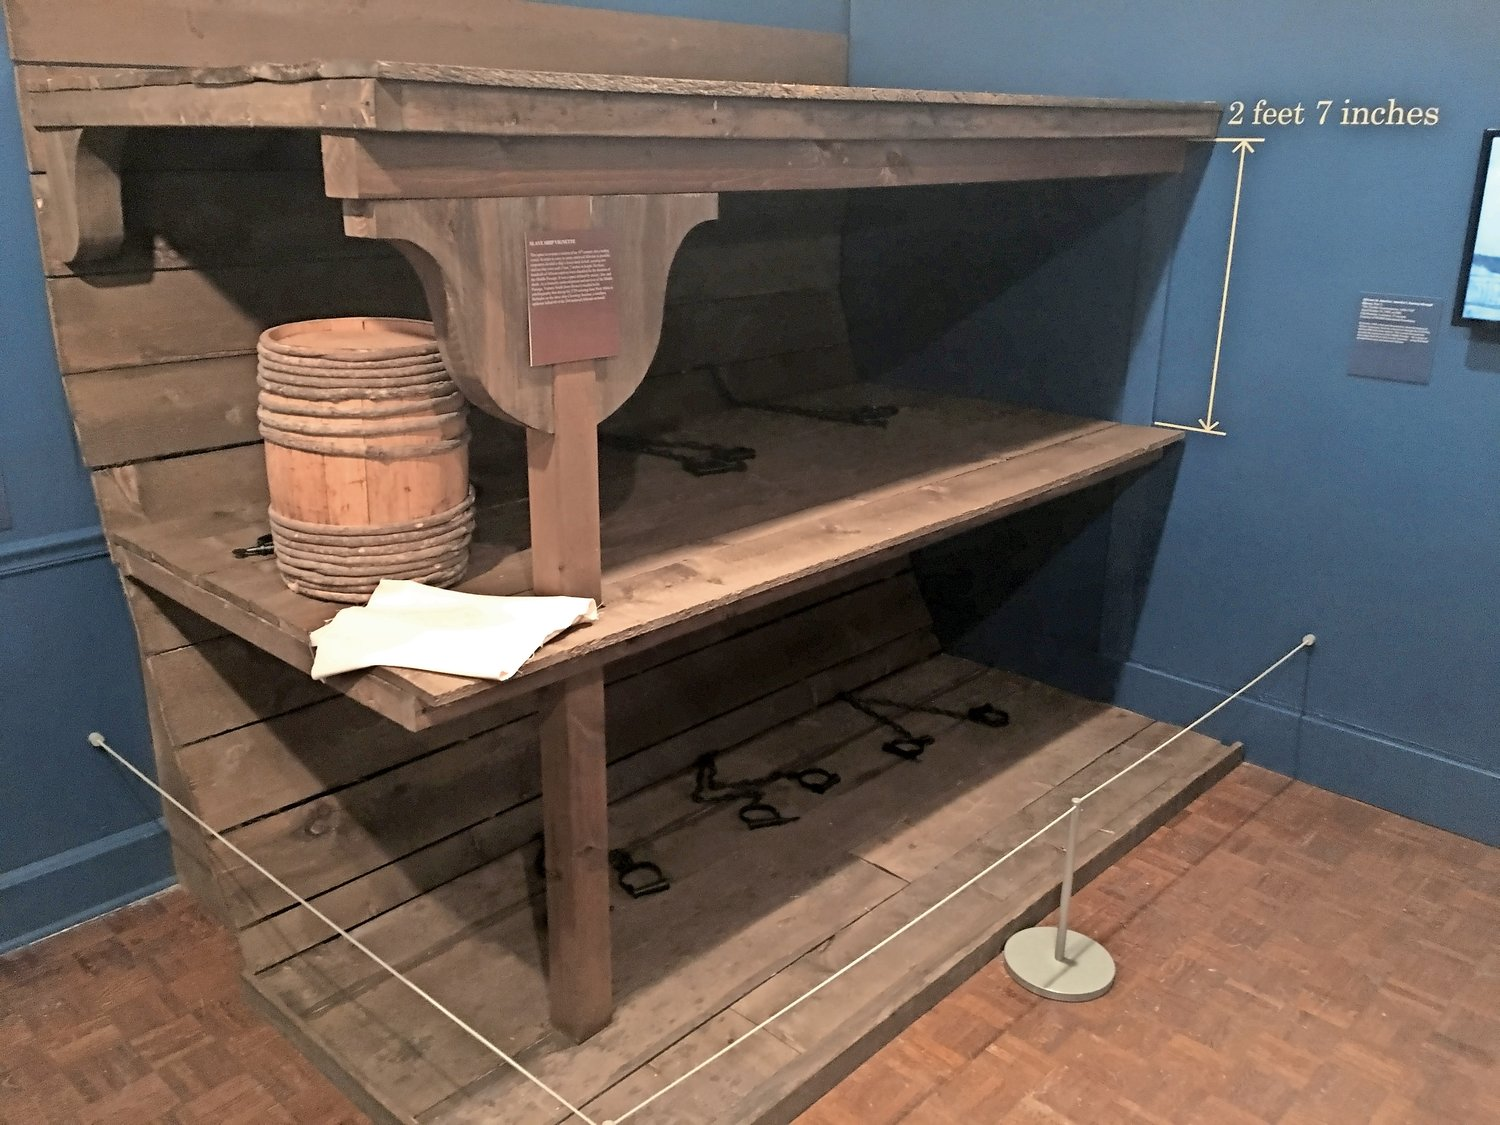 Slaves' sleeping quarters on display at the Stony Brook Museum. Bunks were spaced 2 feet, 7 inches apart.